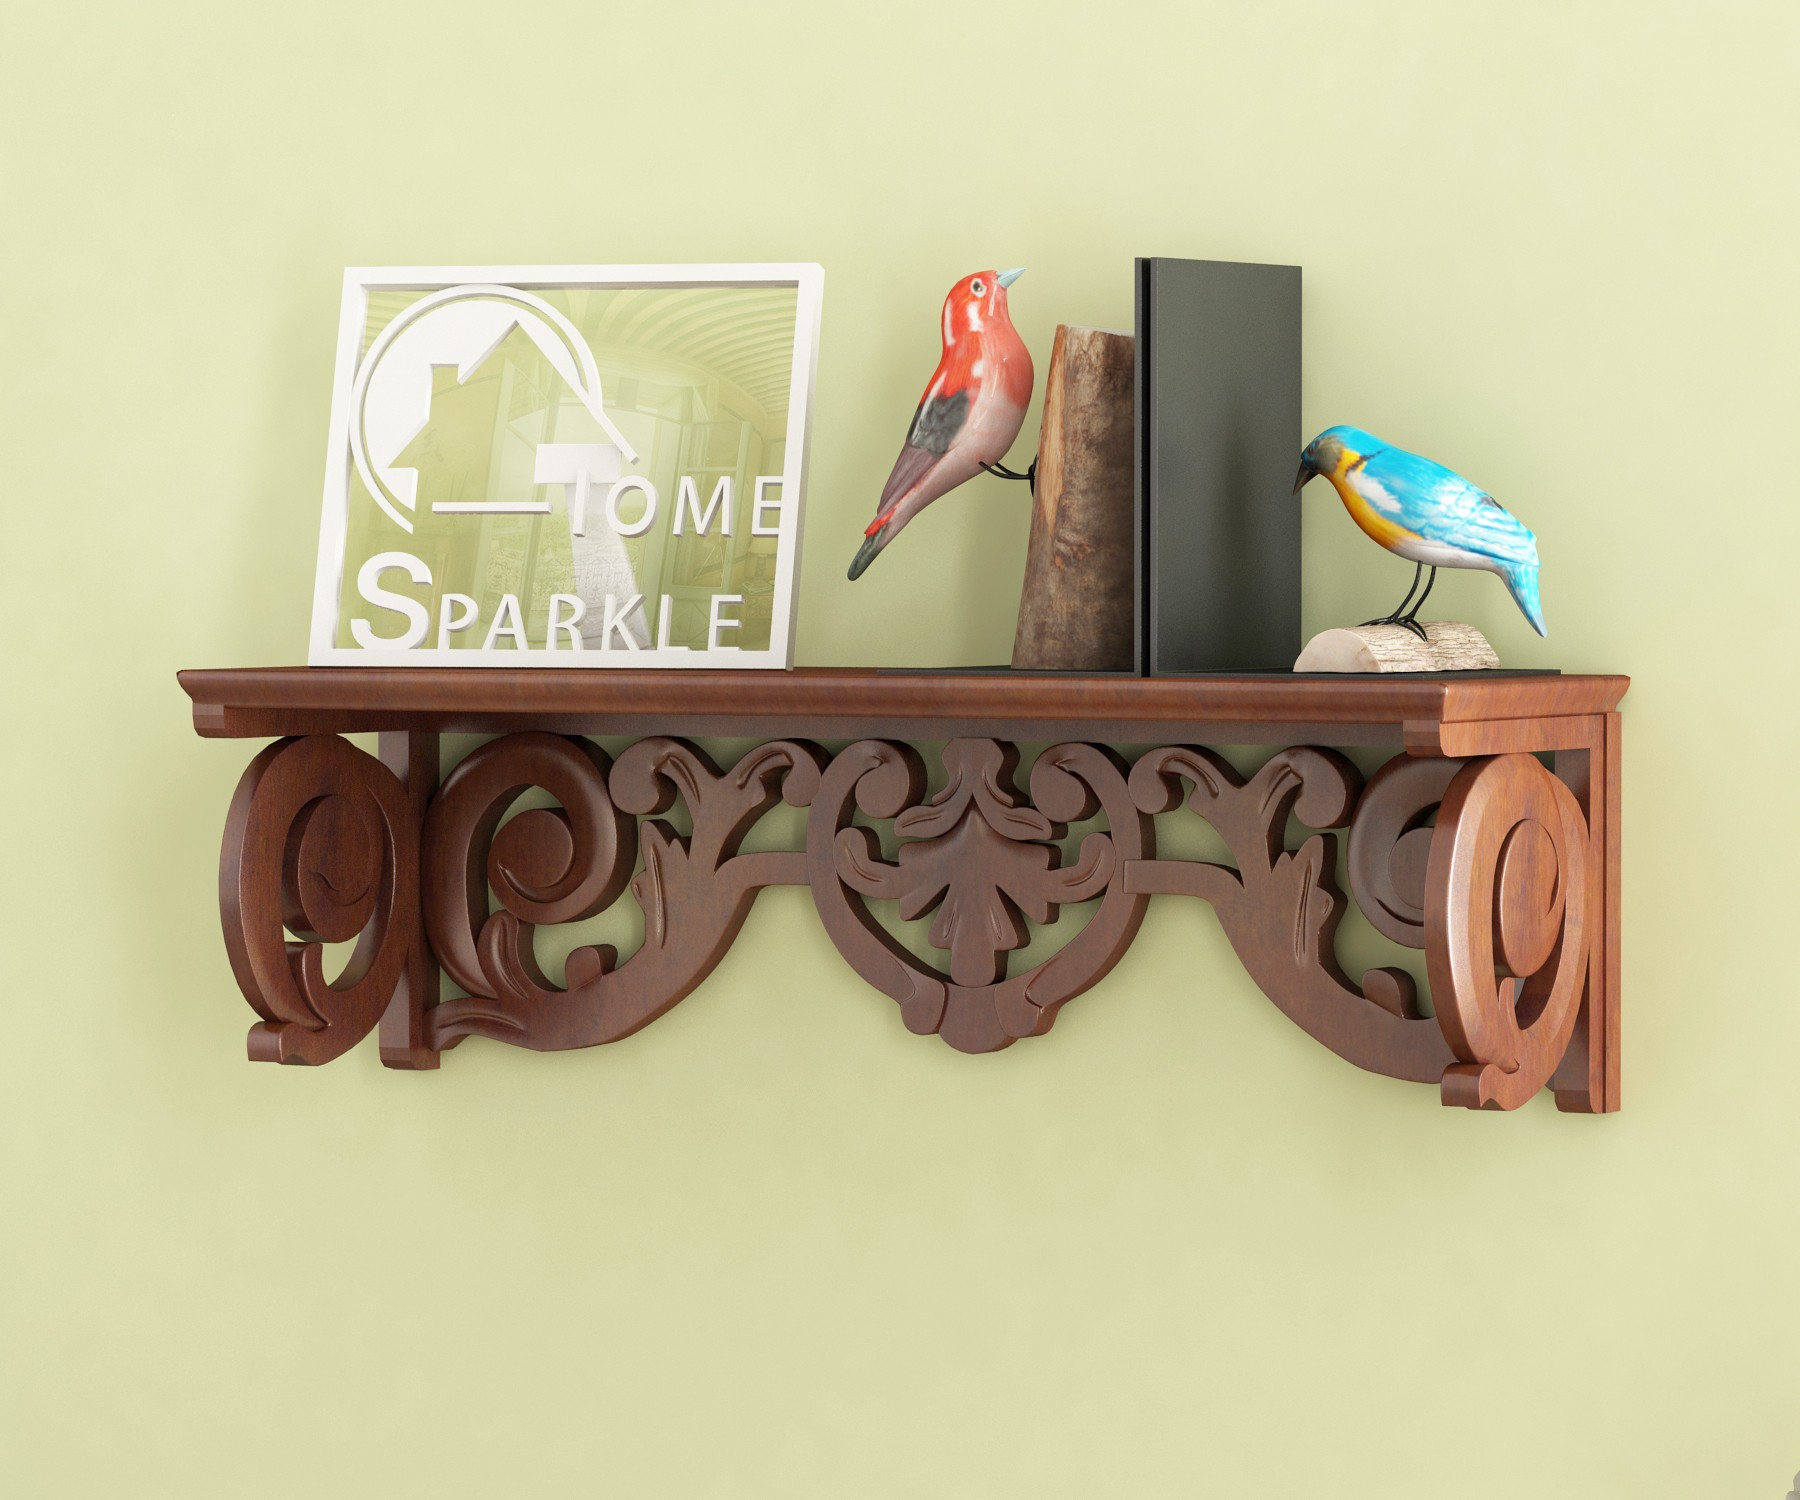 View Home Sparkle Carved MDF Wall Shelf(Number of Shelves - 1, Brown) Furniture (Home Sparkle)